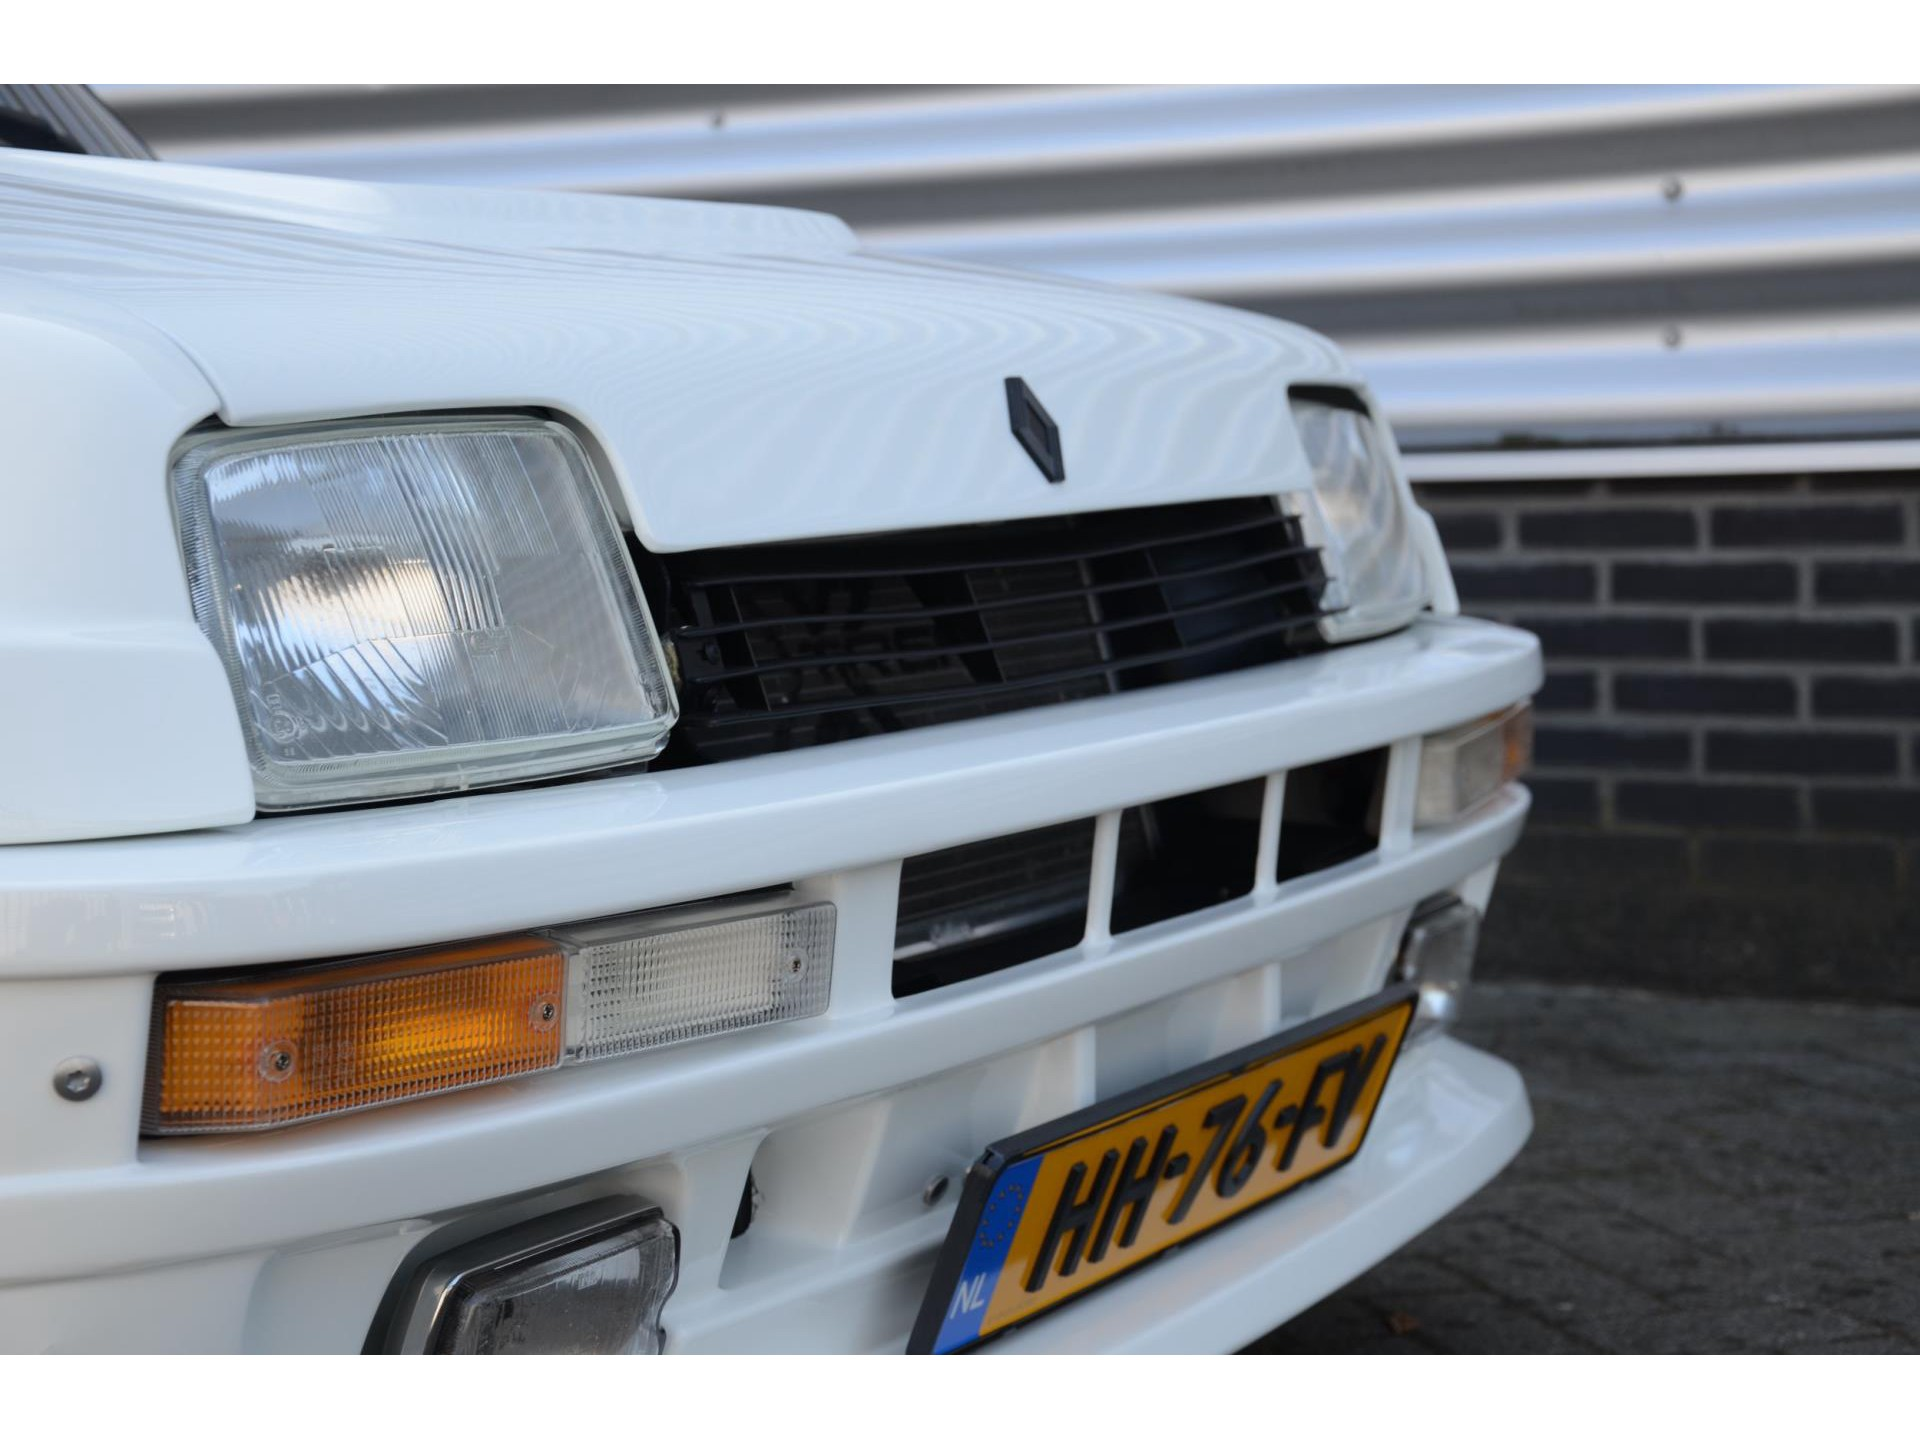 Renault-5-Turbo-Series-1-for-sale-57